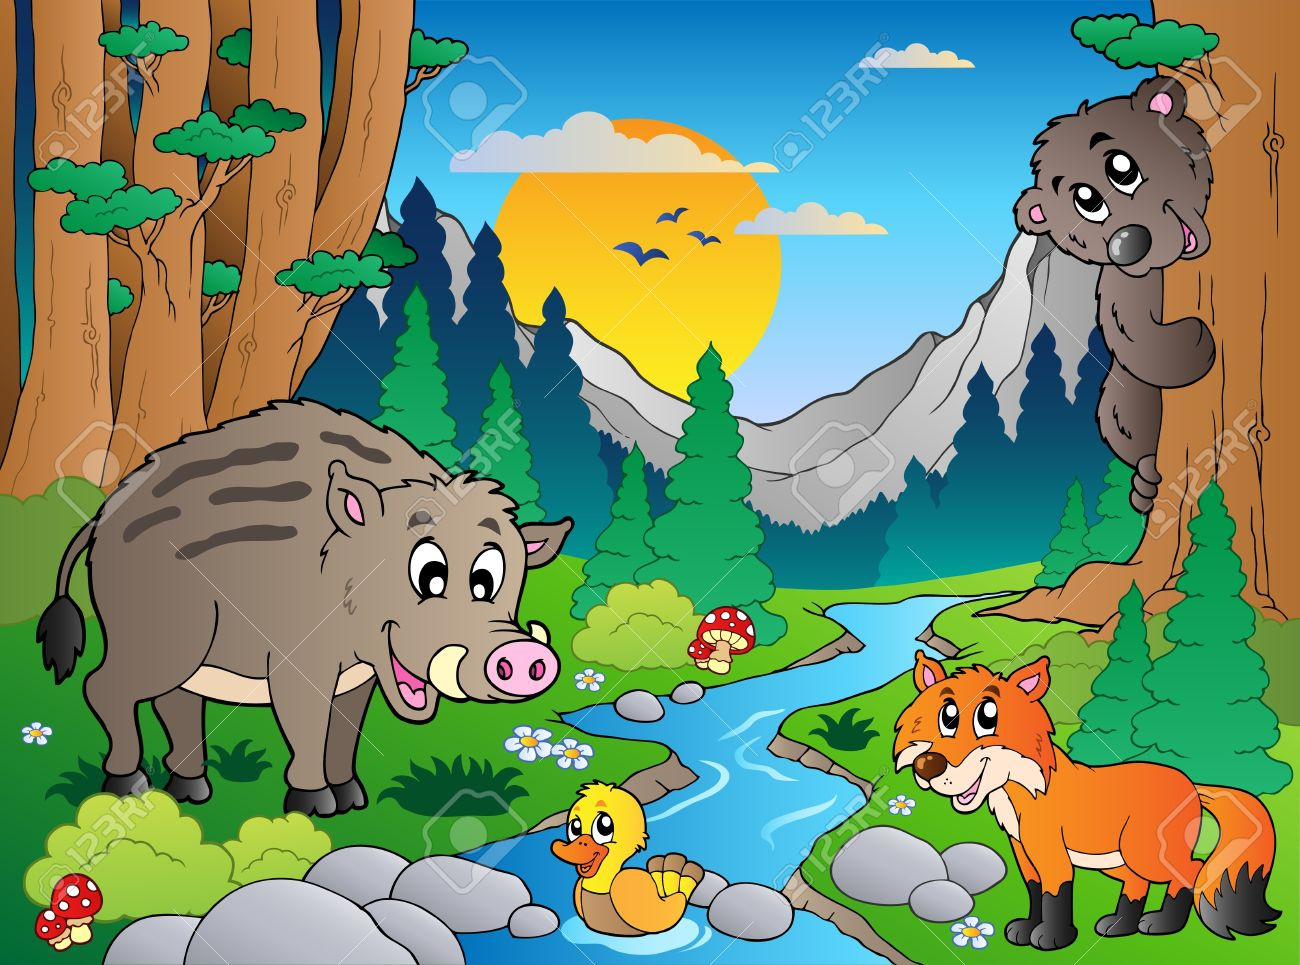 Forest scene with various animals Stock Vector - 9864339